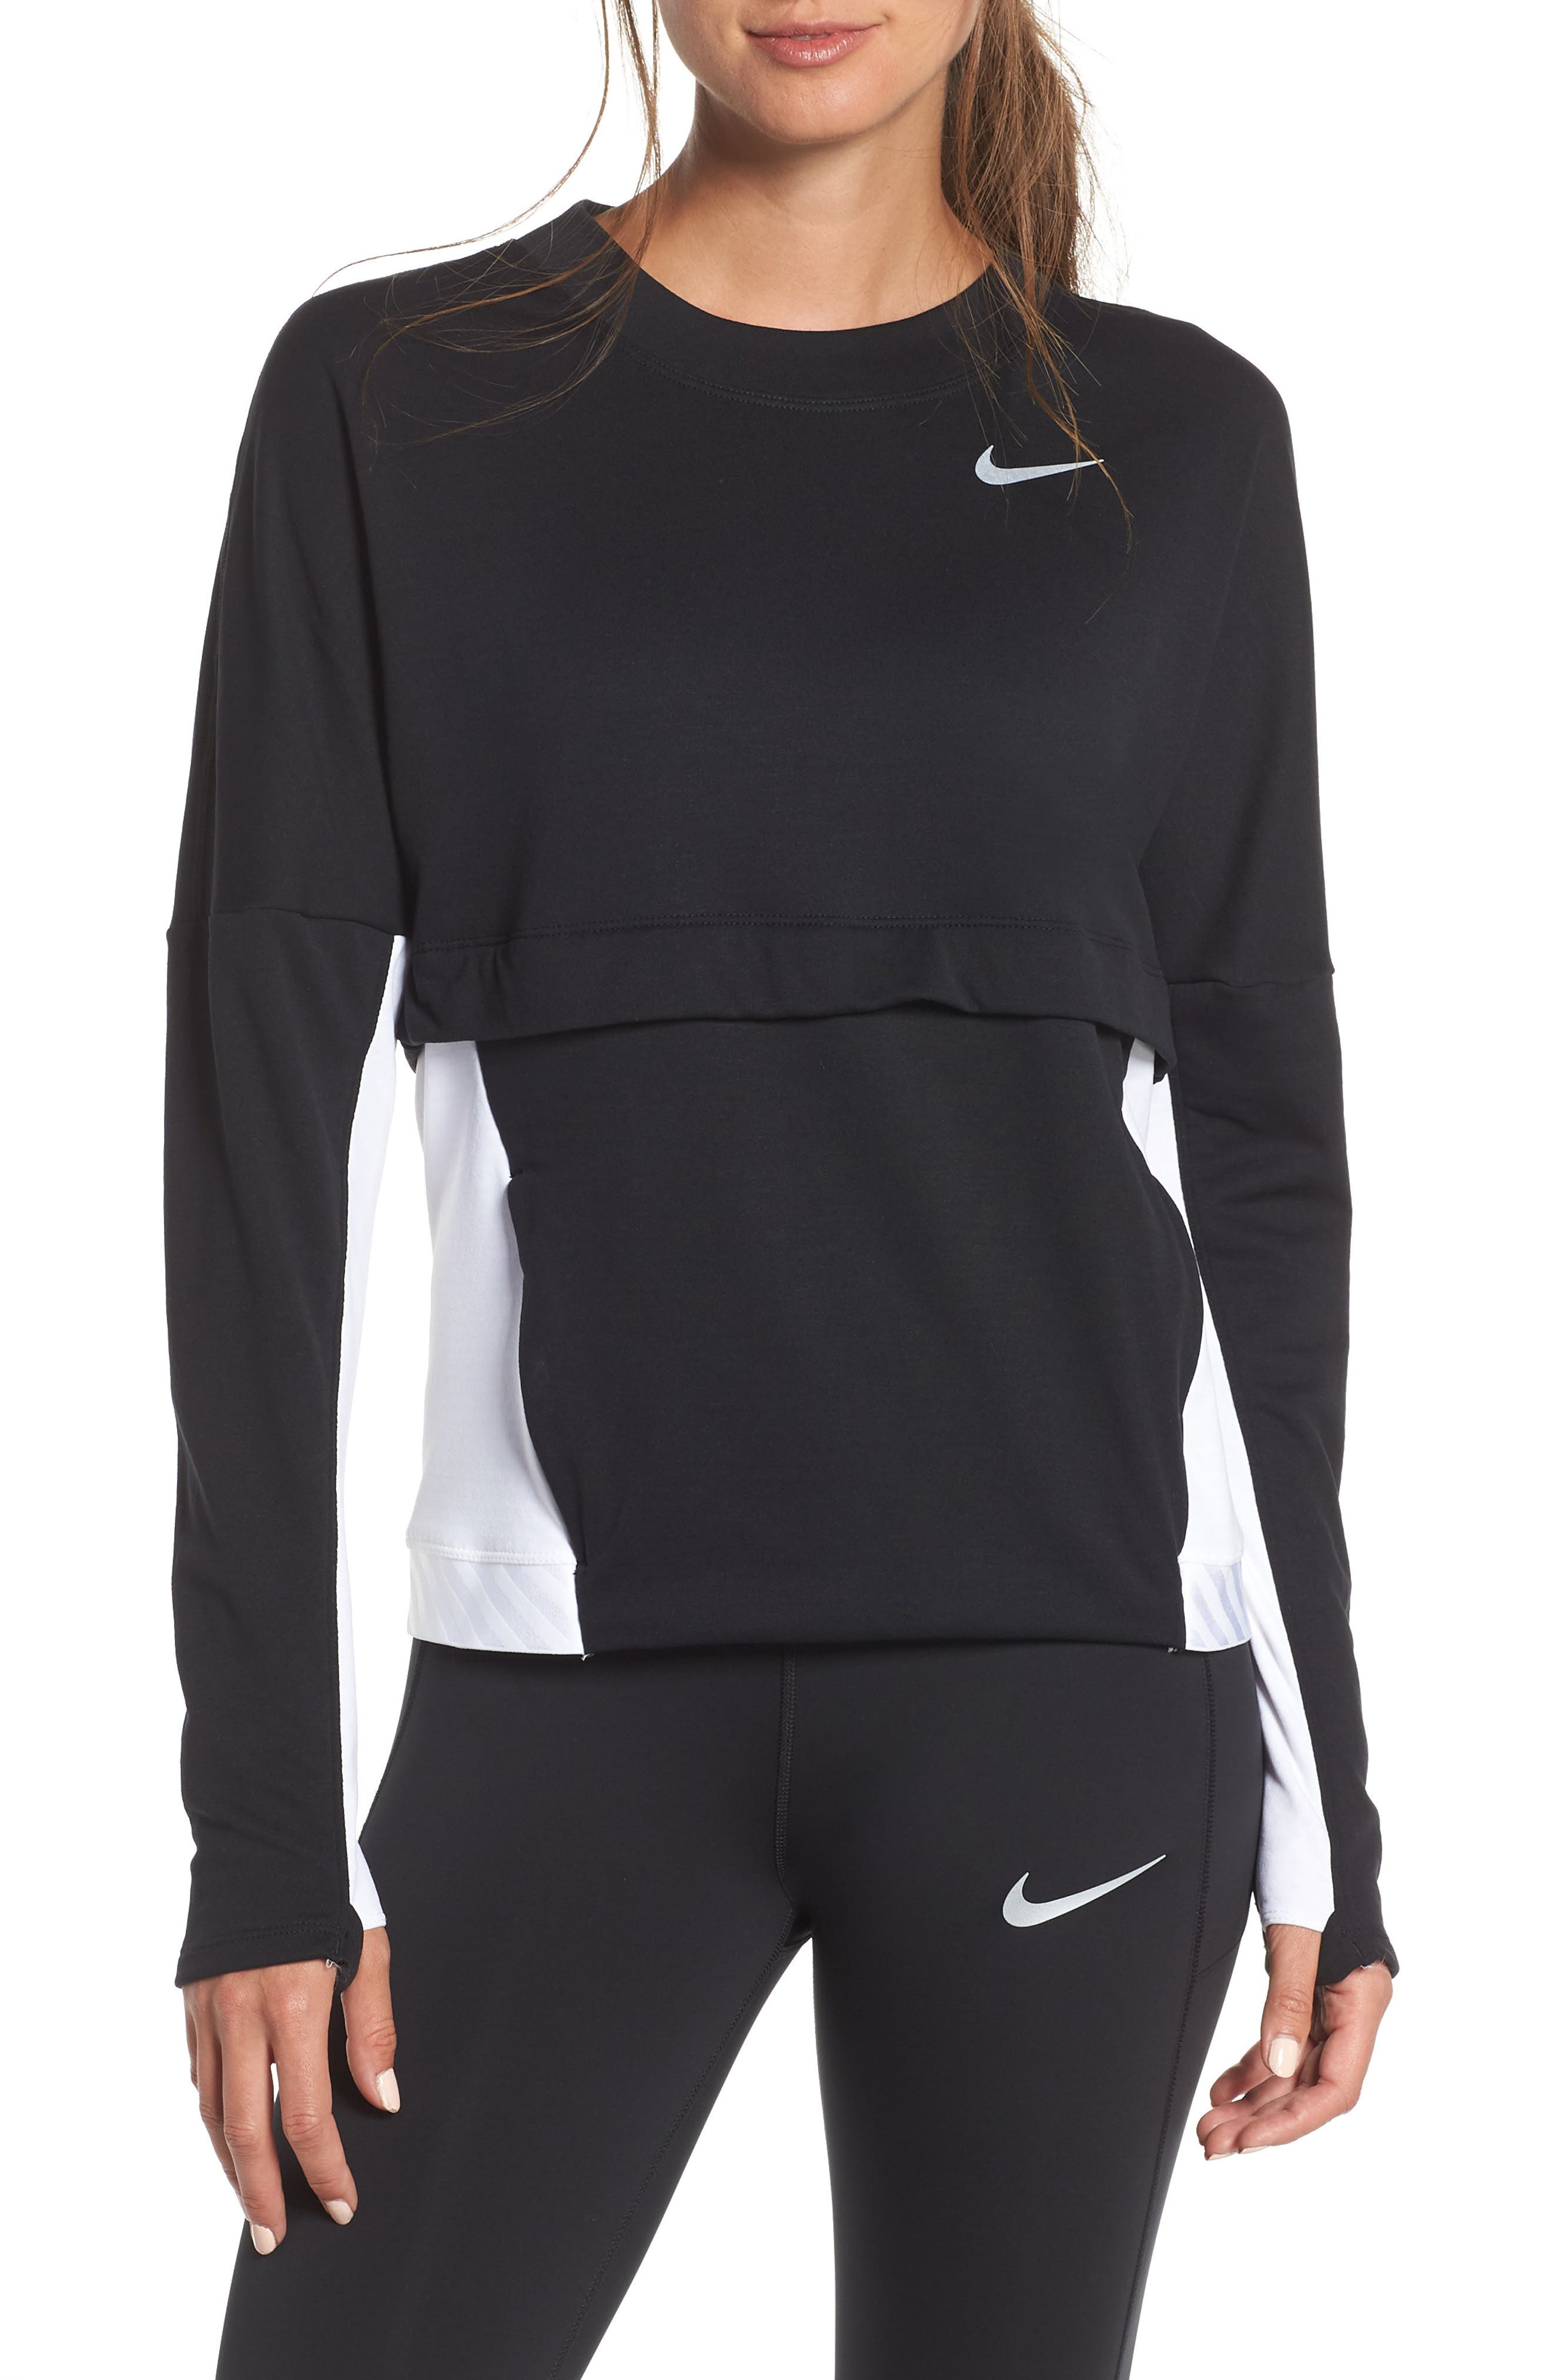 NIKE Therma Sphere Training Top, Main, color, BLACK/ WHITE/ BLACK/ SILVER